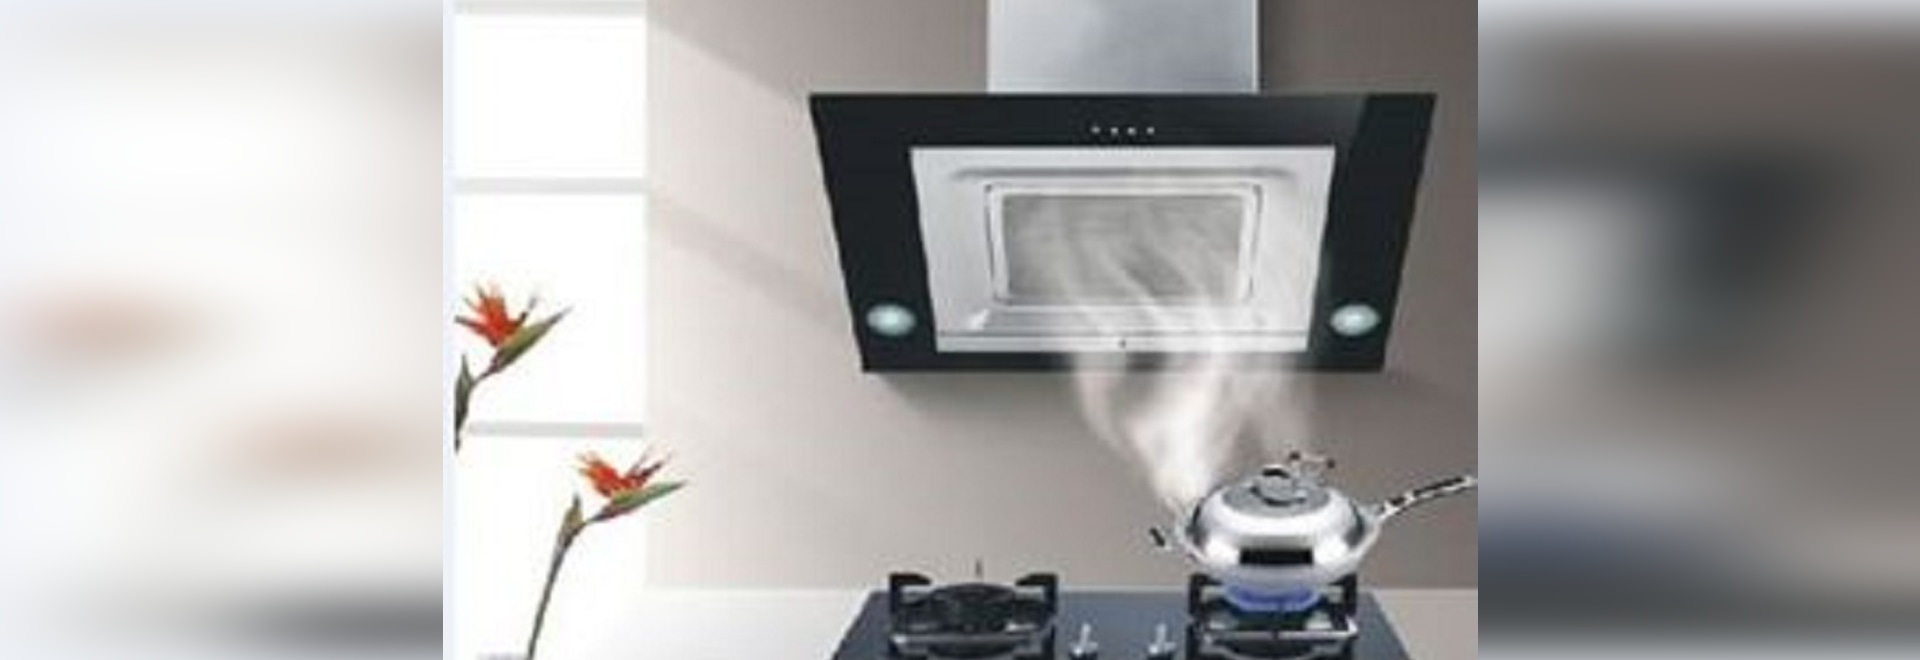 Laser Application In Home Appliance Industry